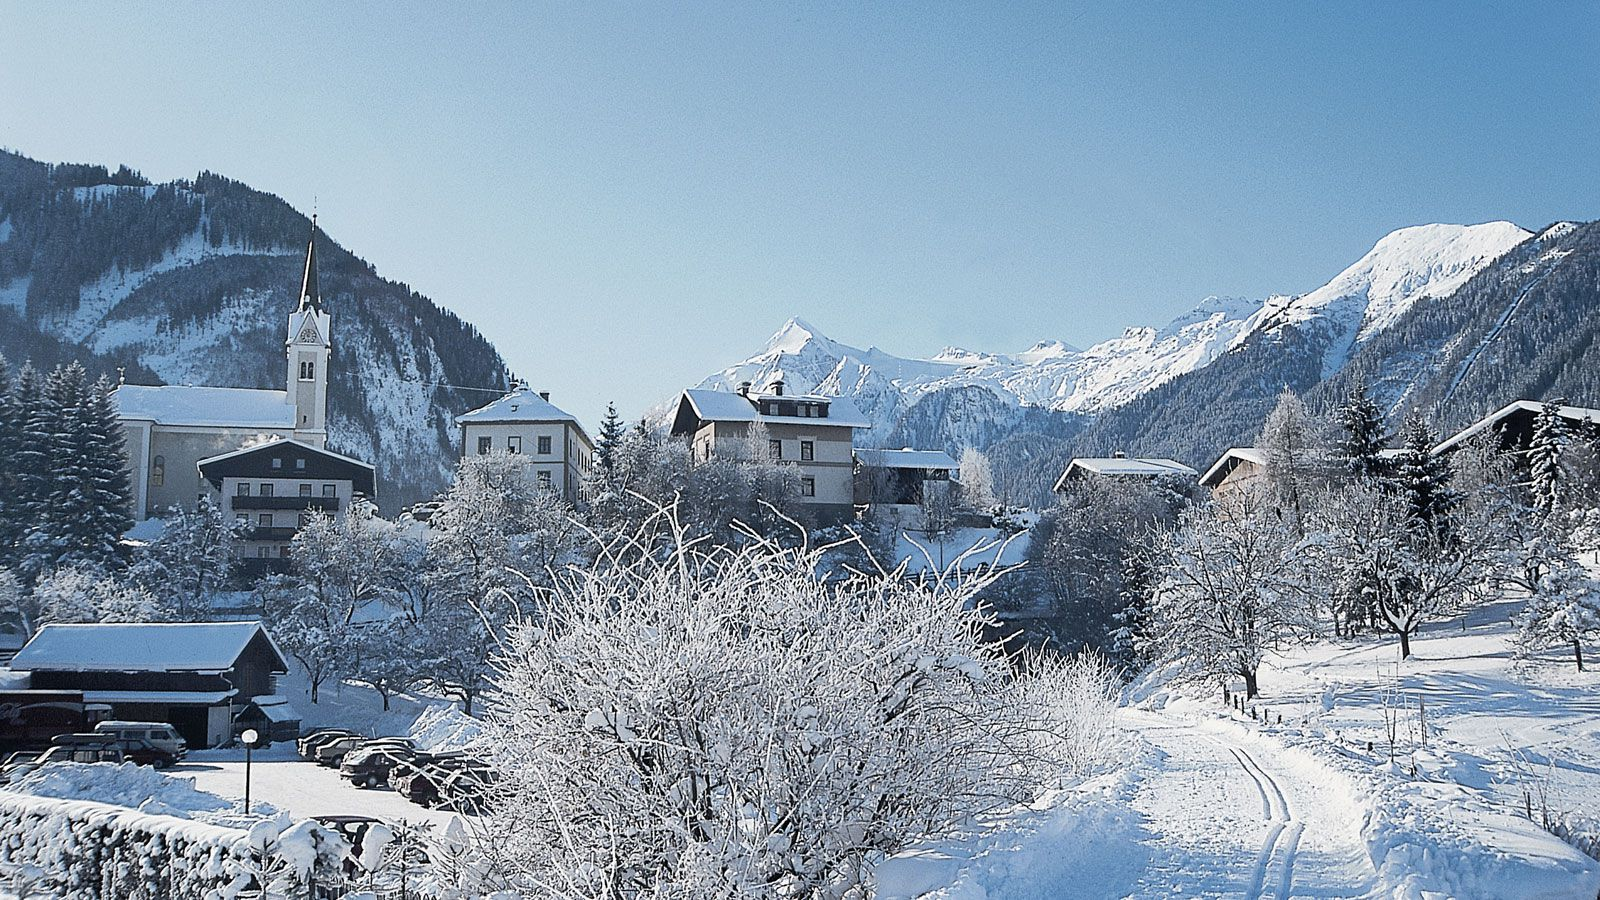 zell am see black personals 눉 air conditioning in the high temperatures not available no full a la carte menu for evening meals had to make a choice at breakfast lake view ordered was a small gap betwee.